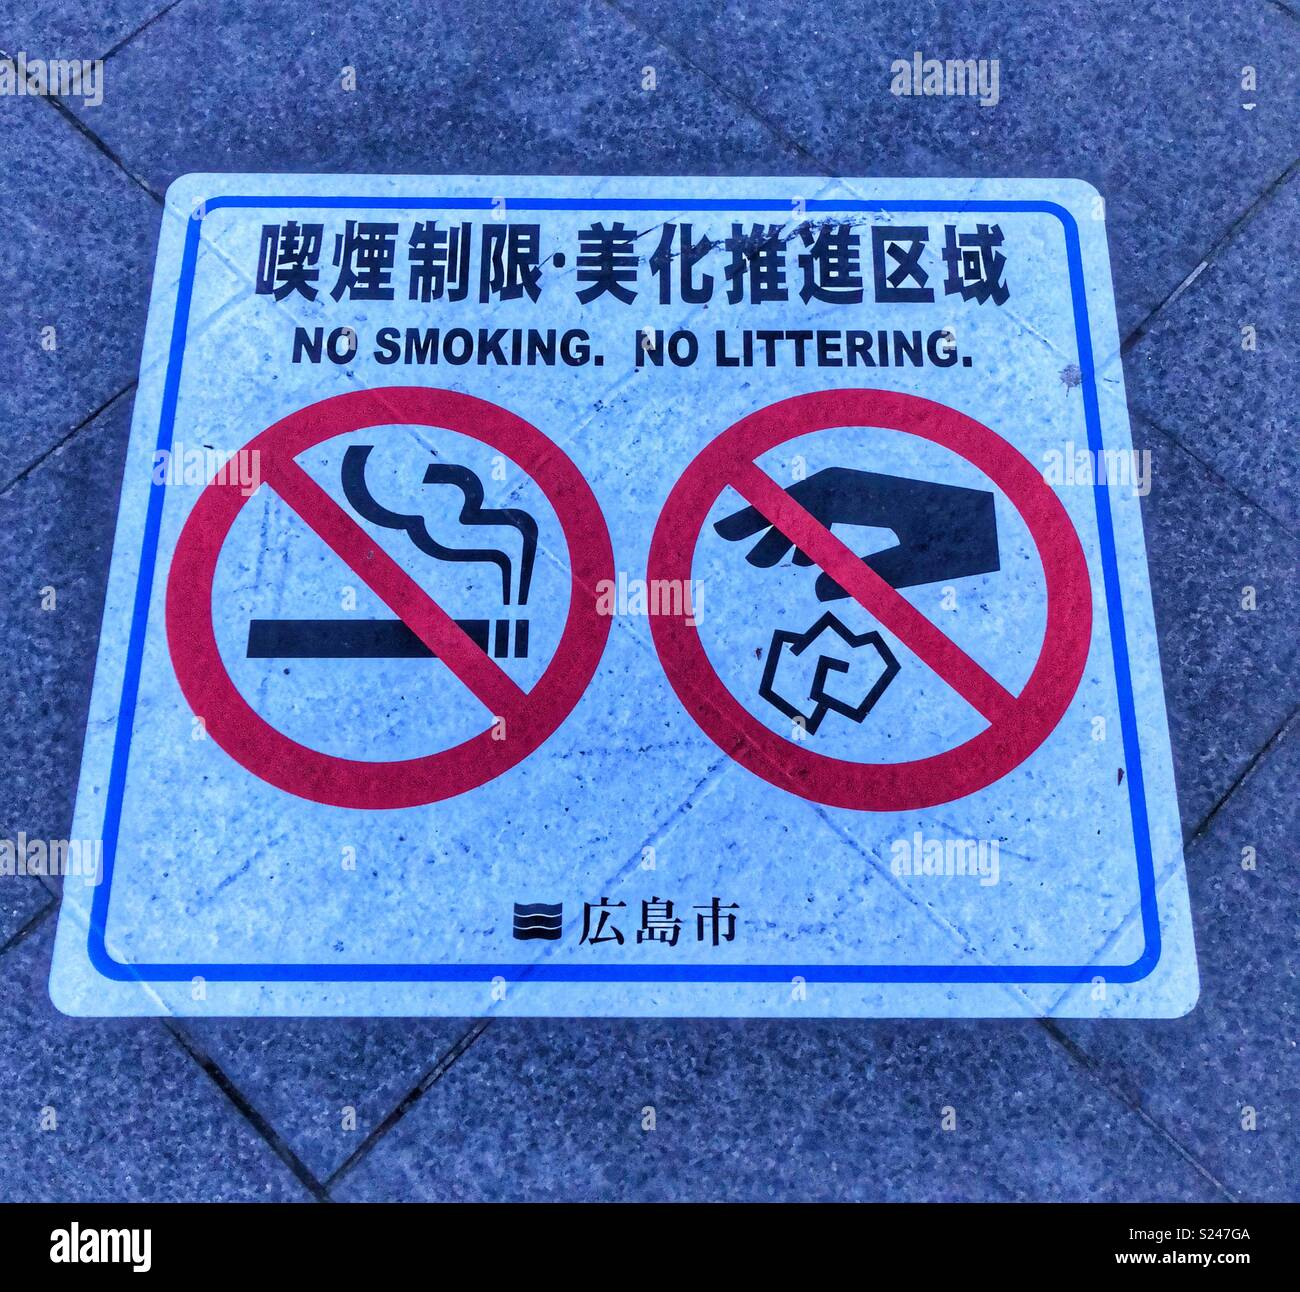 No smoking and no littering sign on a street in Japan. - Stock Image